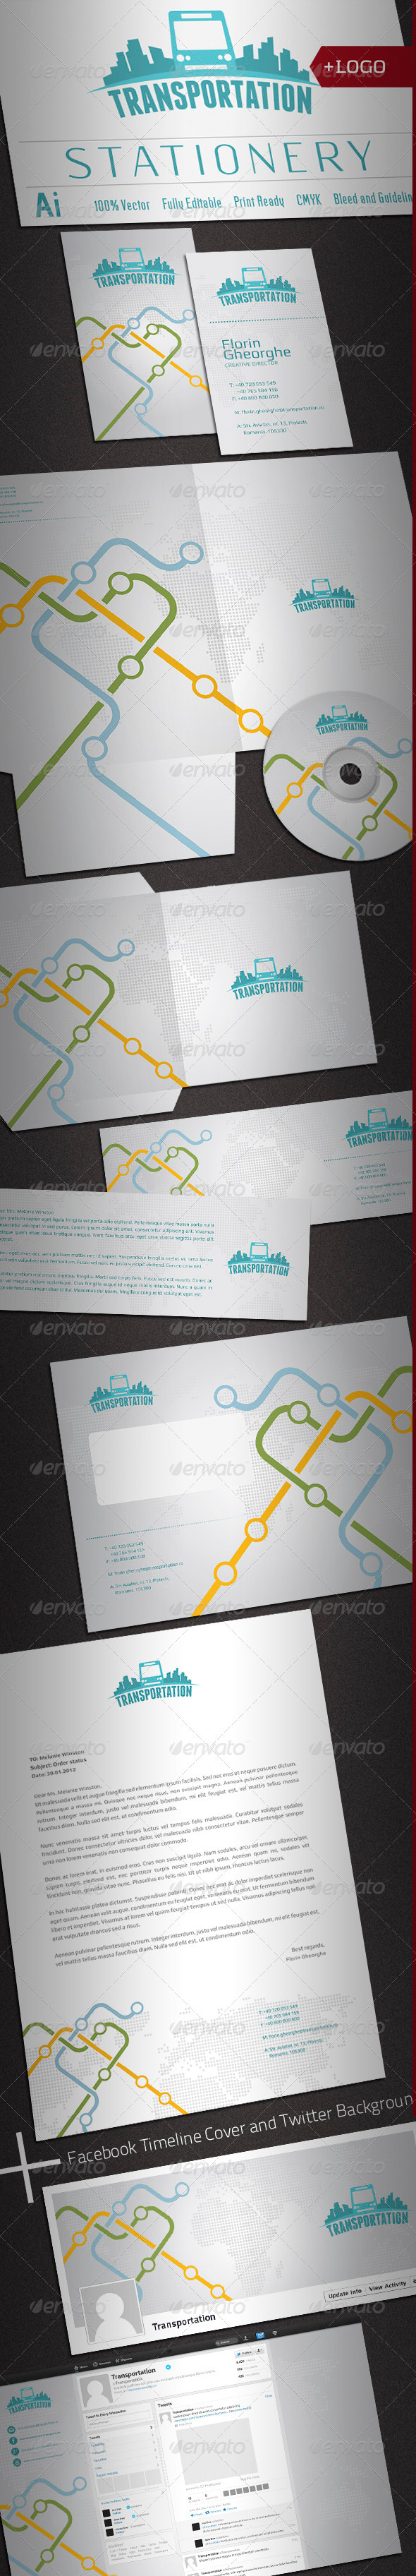 GraphicRiver Passenger Transportation Stationery 2316956